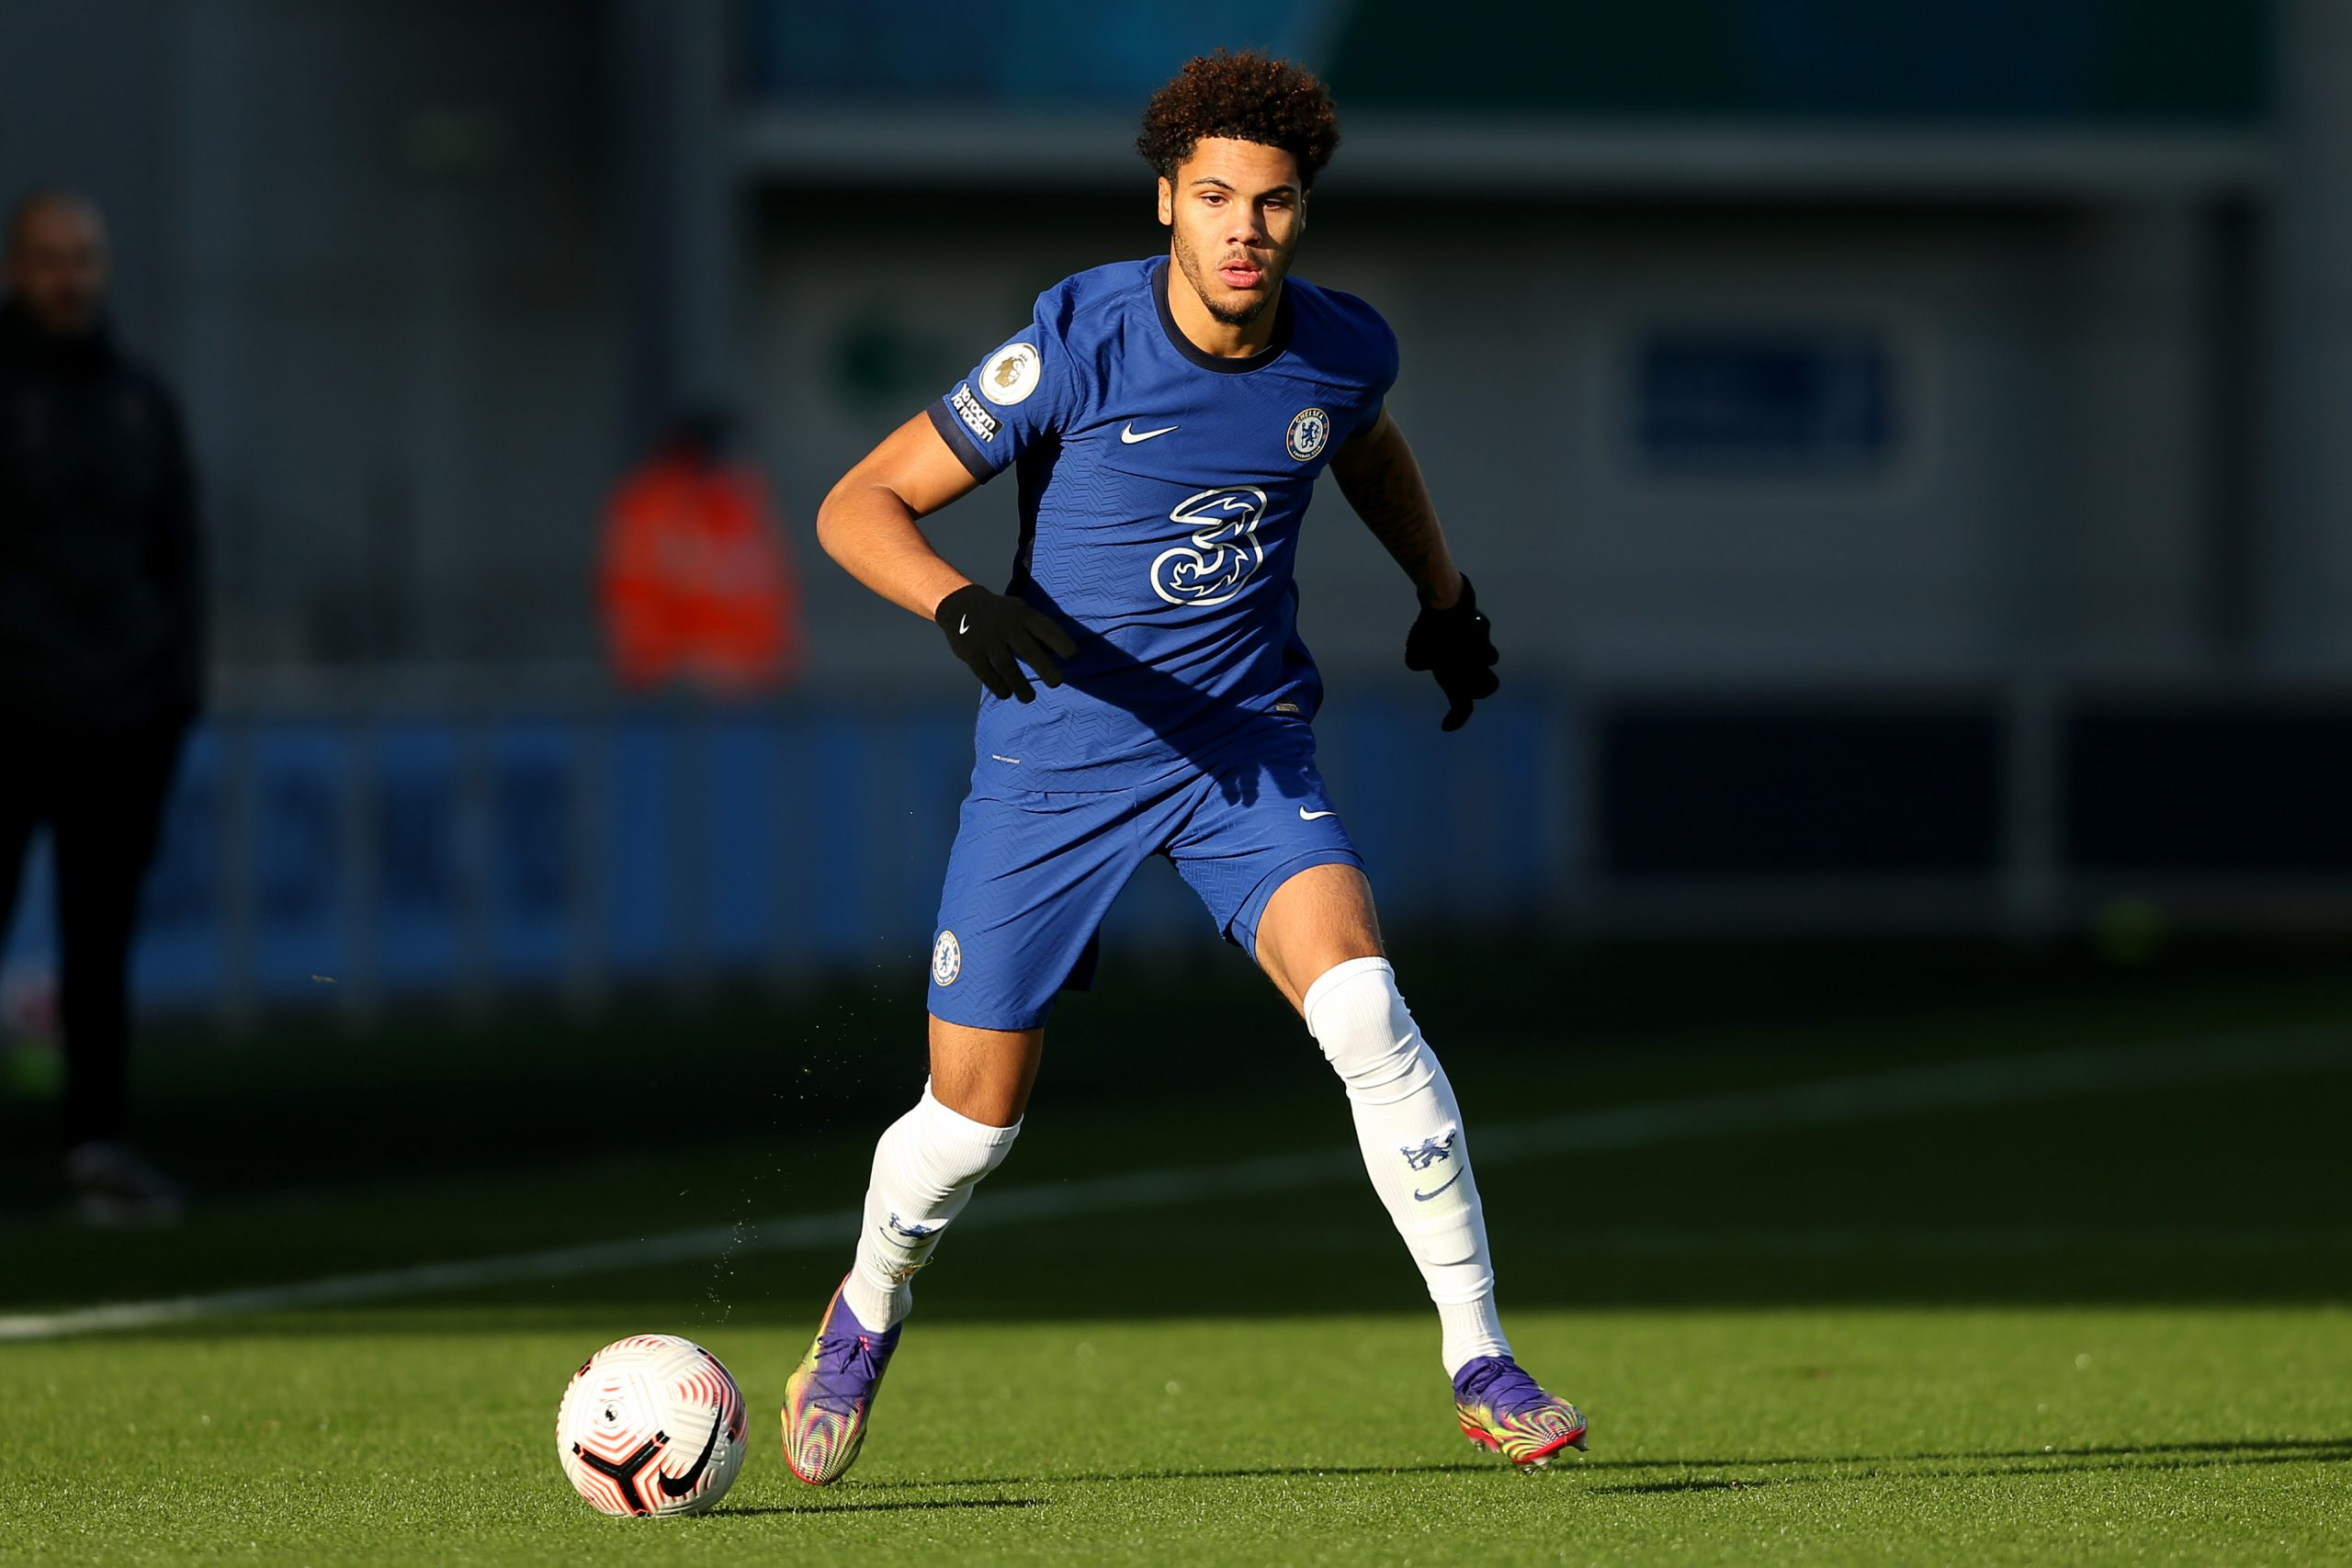 Chelsea U-23 thrashed Manchester United U-23 6-1 in their Premier League 2 game on Friday to go 4 points clear at the top of the table. (GETTY Images)